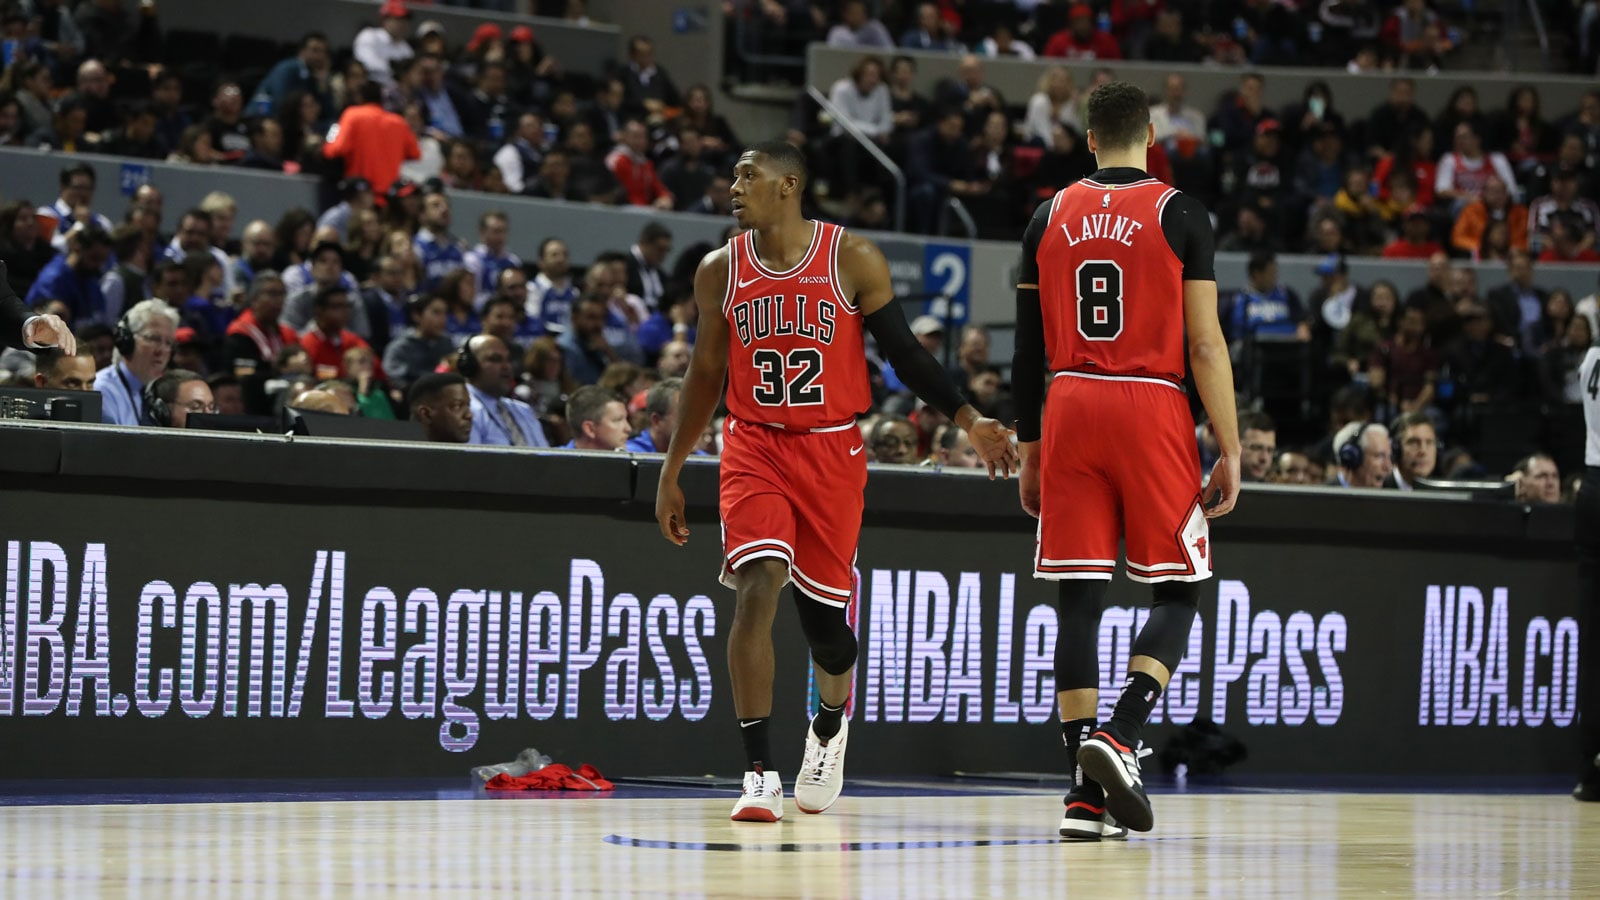 Zach LaVine out for Bulls Kris Dunn to start